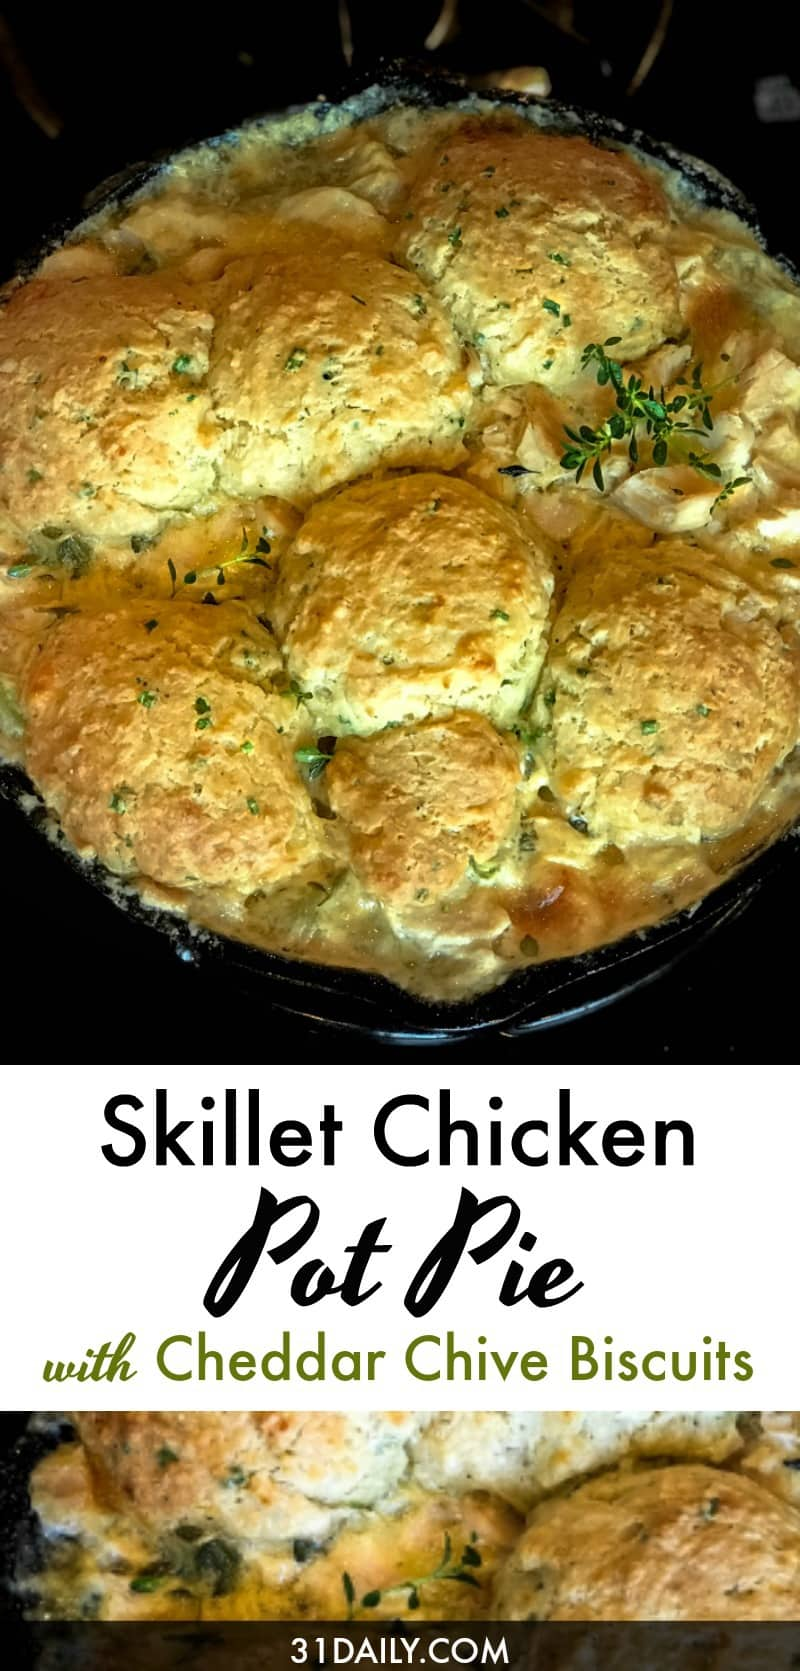 Skillet Chicken Pot Pie With Cheddar Chive Biscuits 31daily Com